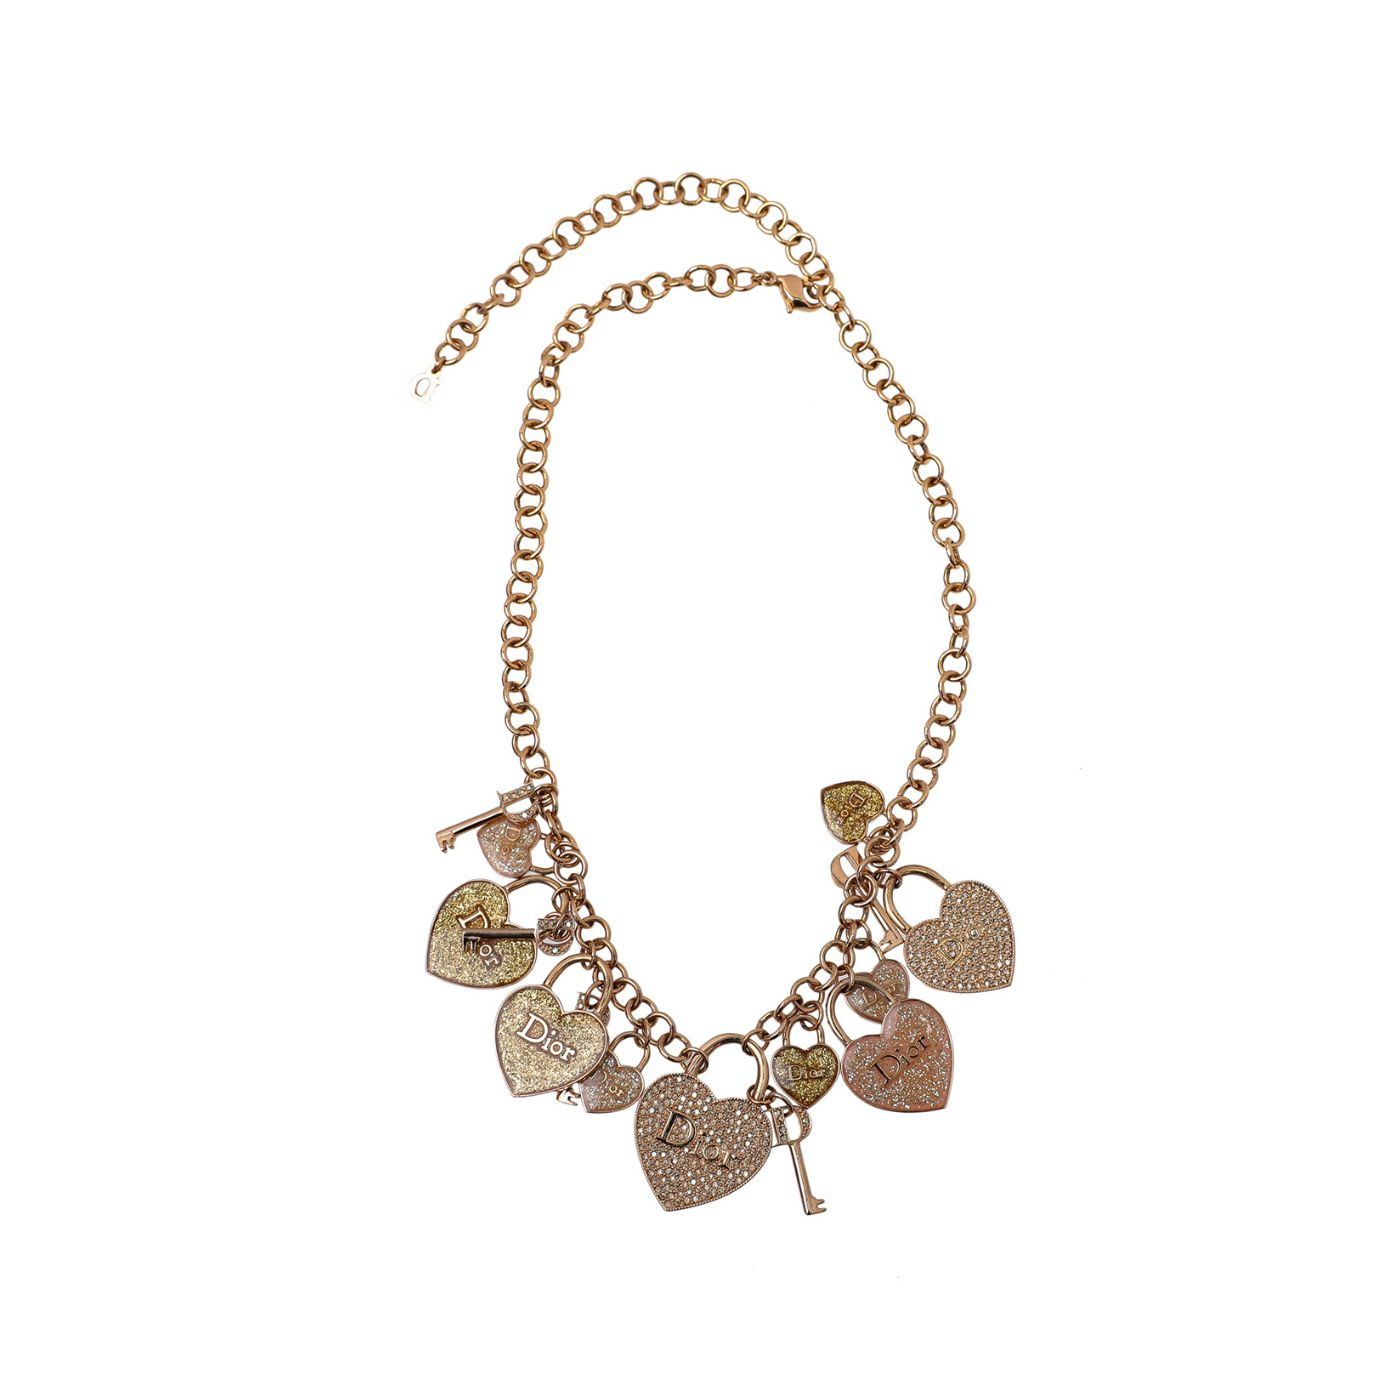 Christian Dior Gold Tone Heart Lock and Keys Charm Necklace